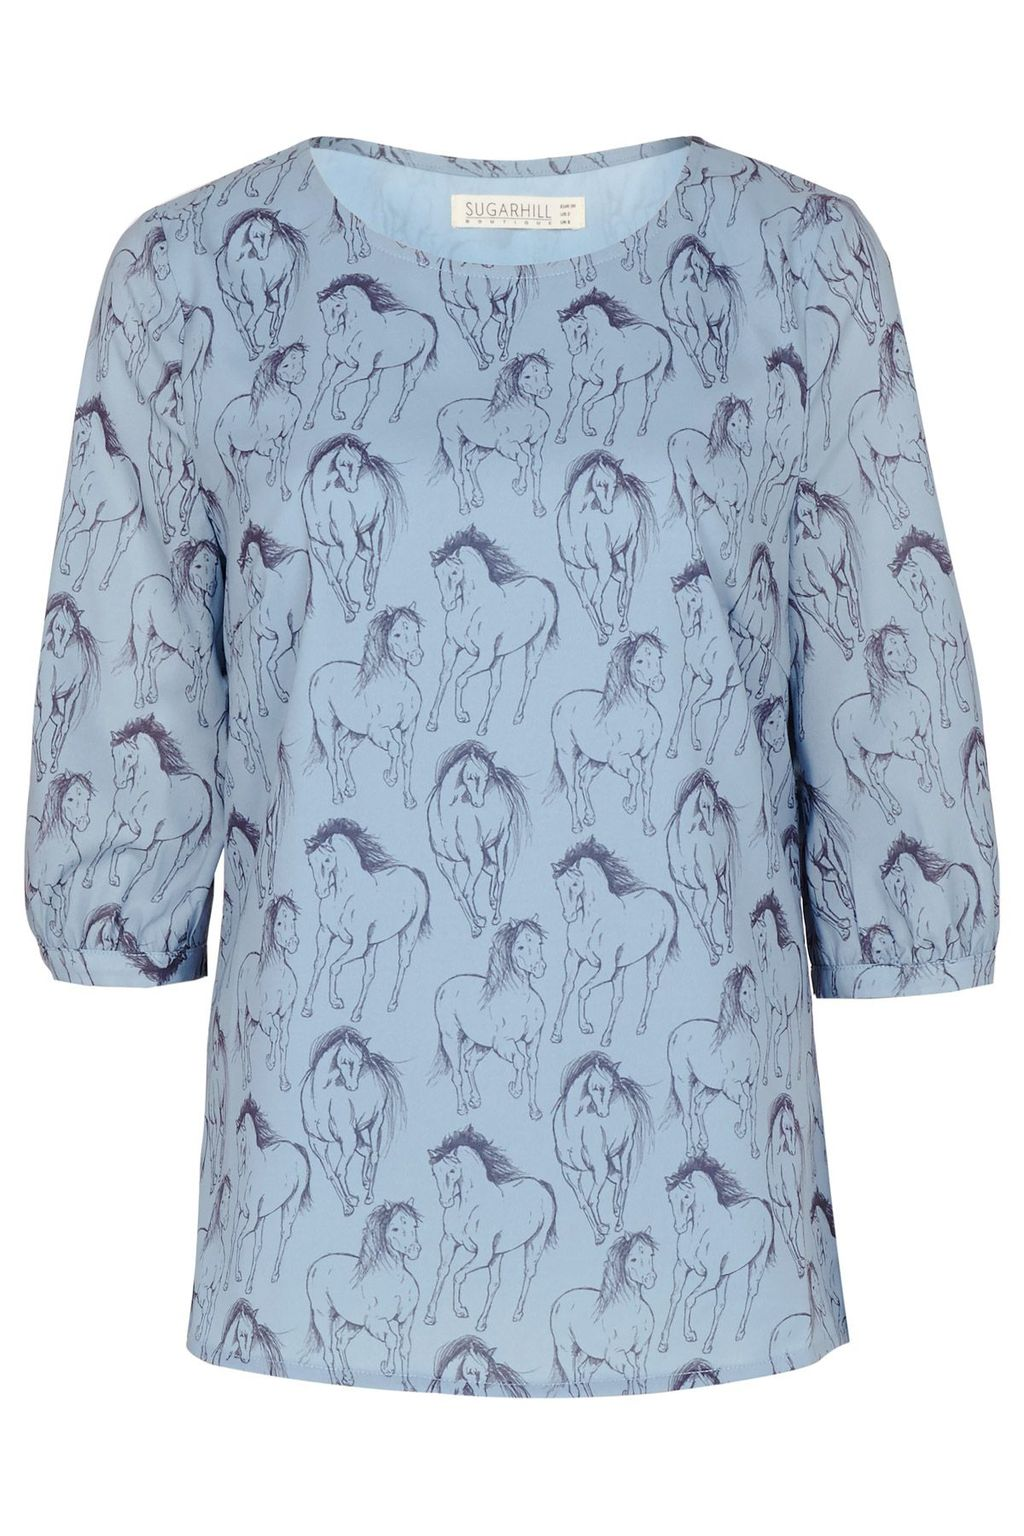 Fifi Running Horse Cross Back Top, Blue - neckline: round neck; predominant colour: pale blue; secondary colour: navy; occasions: casual, creative work; length: standard; style: top; fibres: polyester/polyamide - 100%; fit: body skimming; sleeve length: 3/4 length; sleeve style: standard; texture group: crepes; pattern type: fabric; pattern size: light/subtle; pattern: patterned/print; season: s/s 2016; wardrobe: highlight